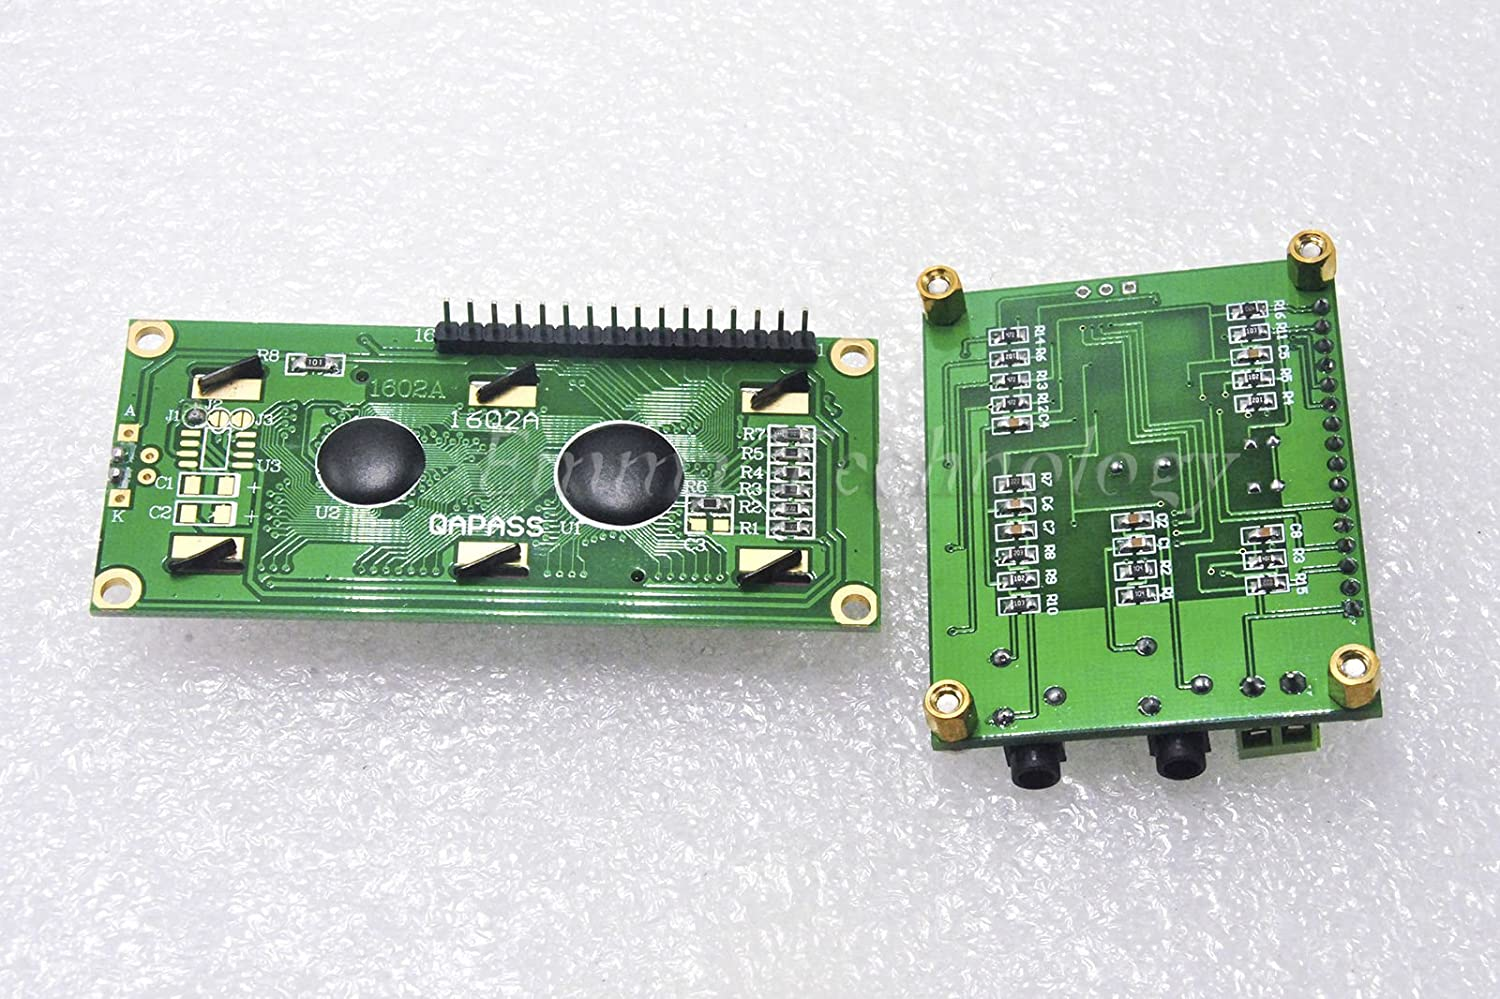 Dt210 Audio Decoding Dtmf Decoder Encoder Module Encoding Display Instruments Computers Accessories